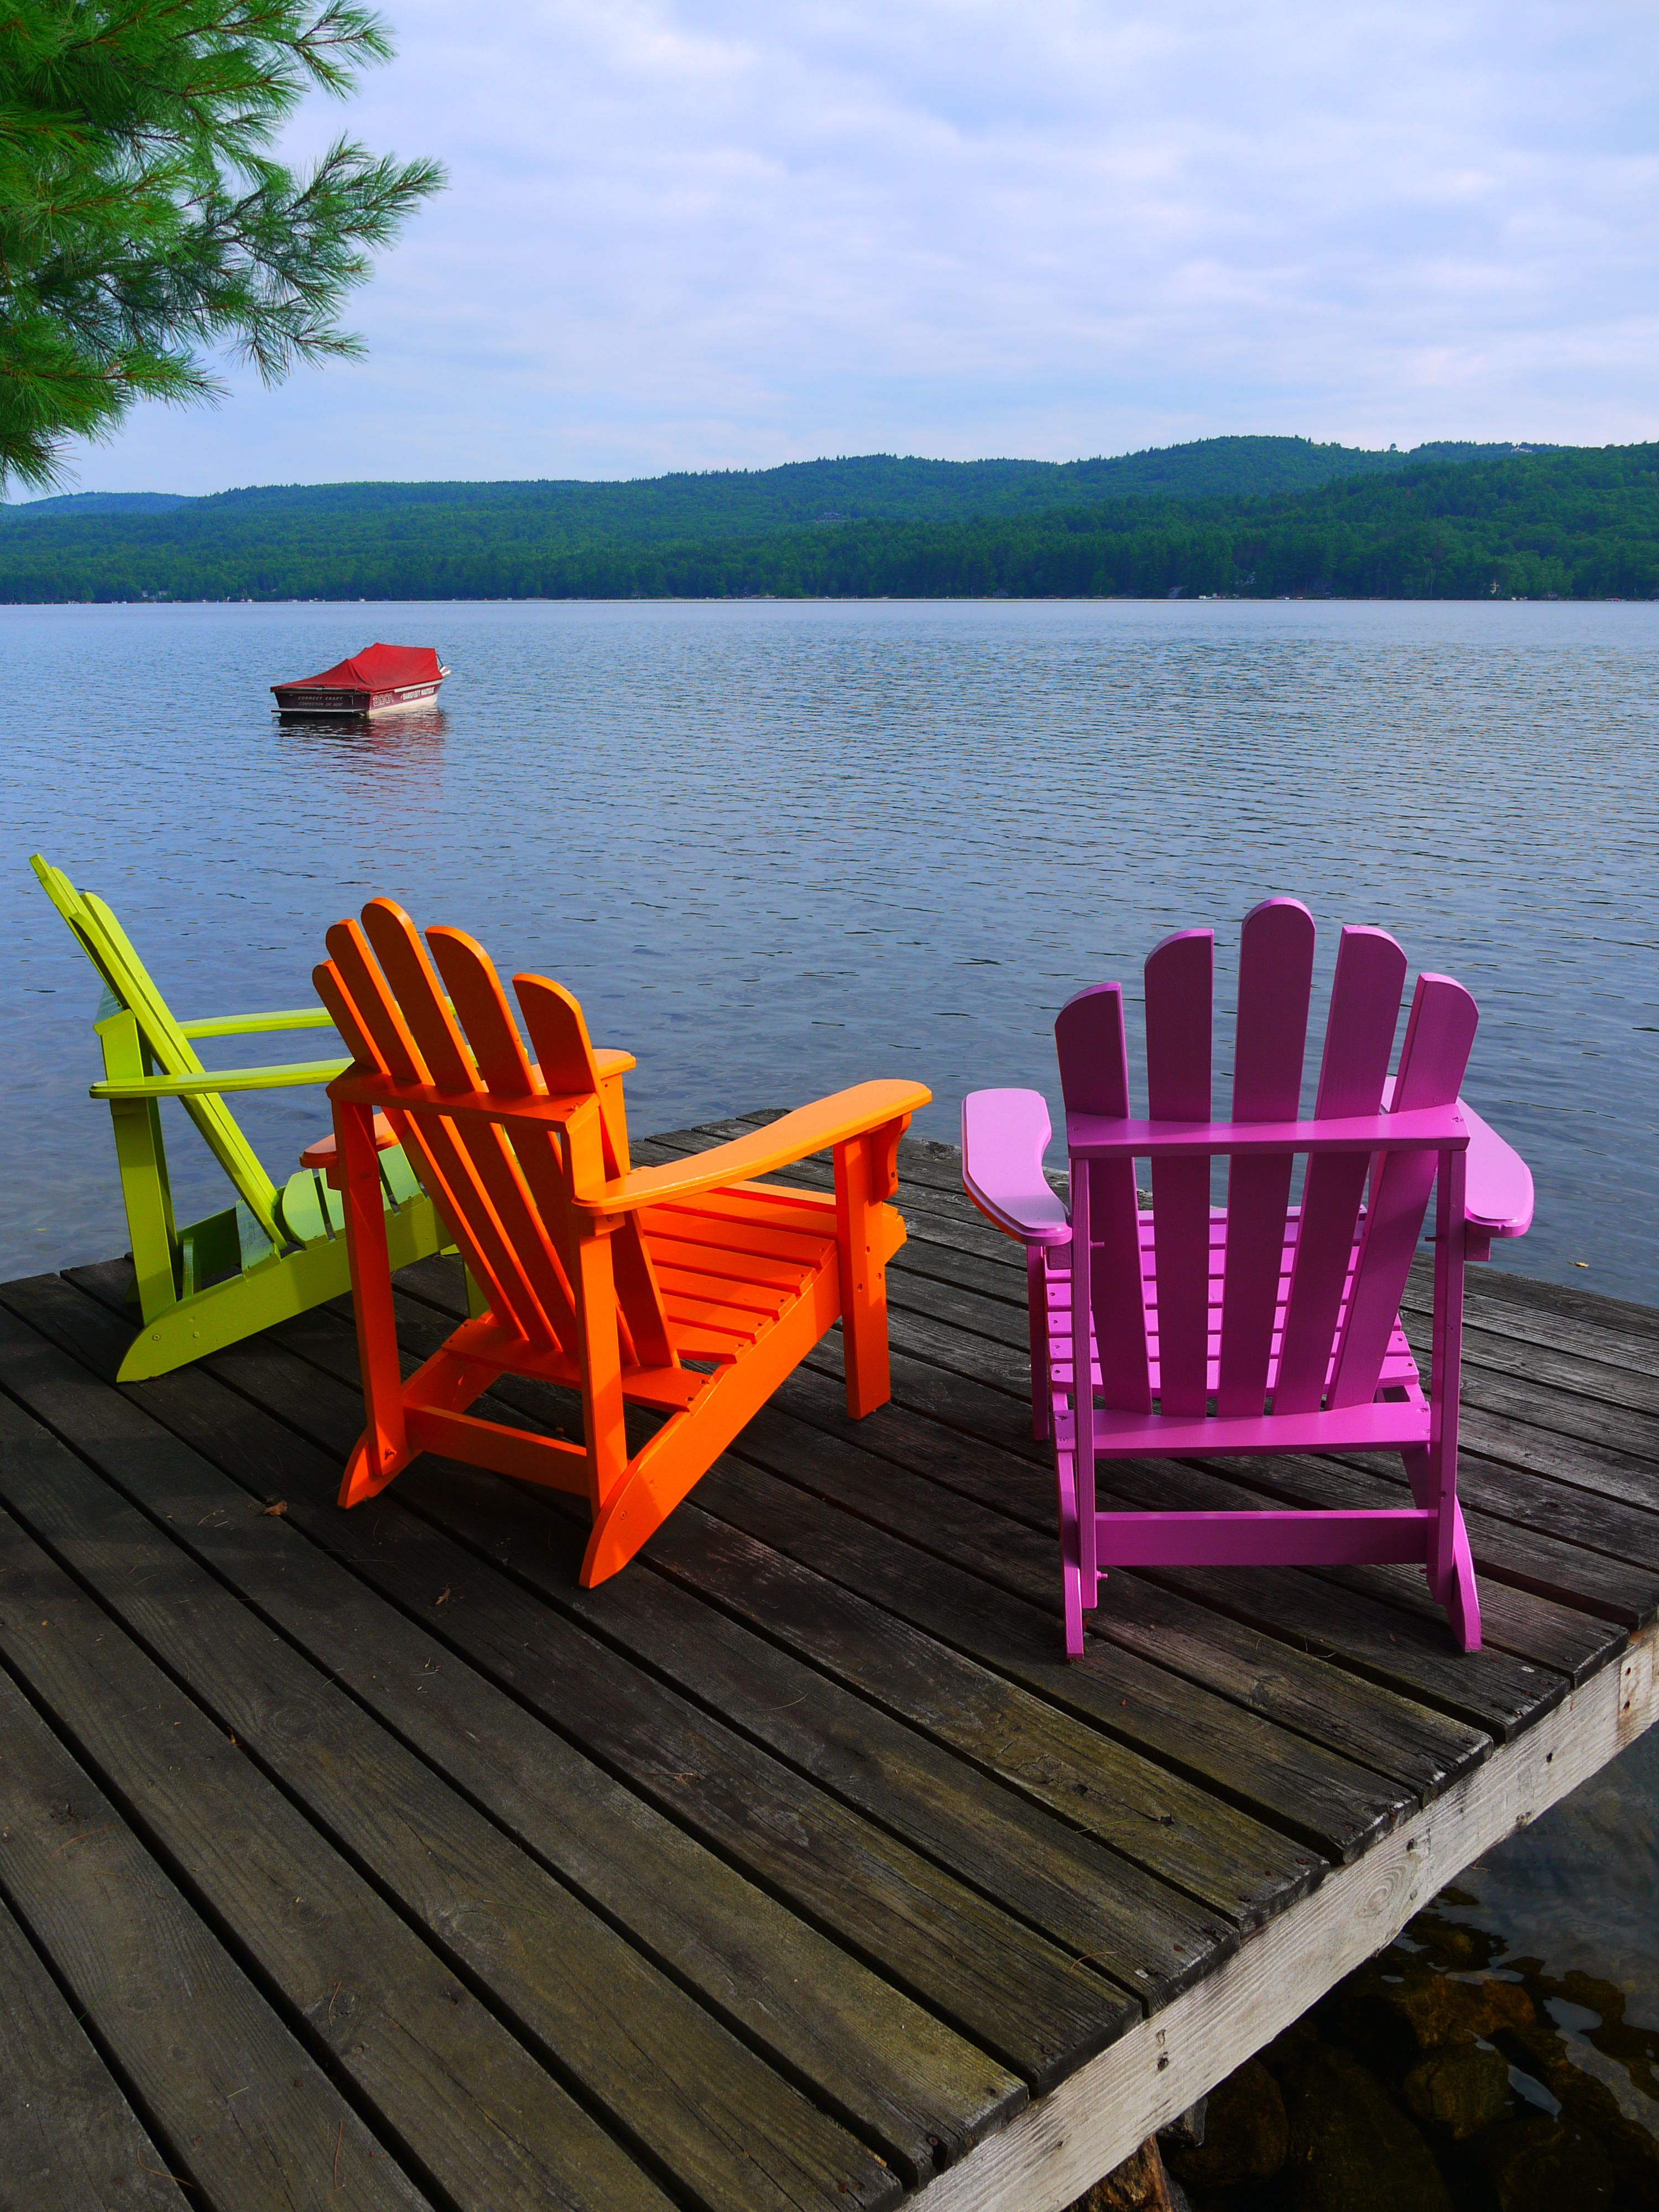 Attractive Adirondack Chairs. Donu0027t You Just Love These Colors Of Lime Green, Orange